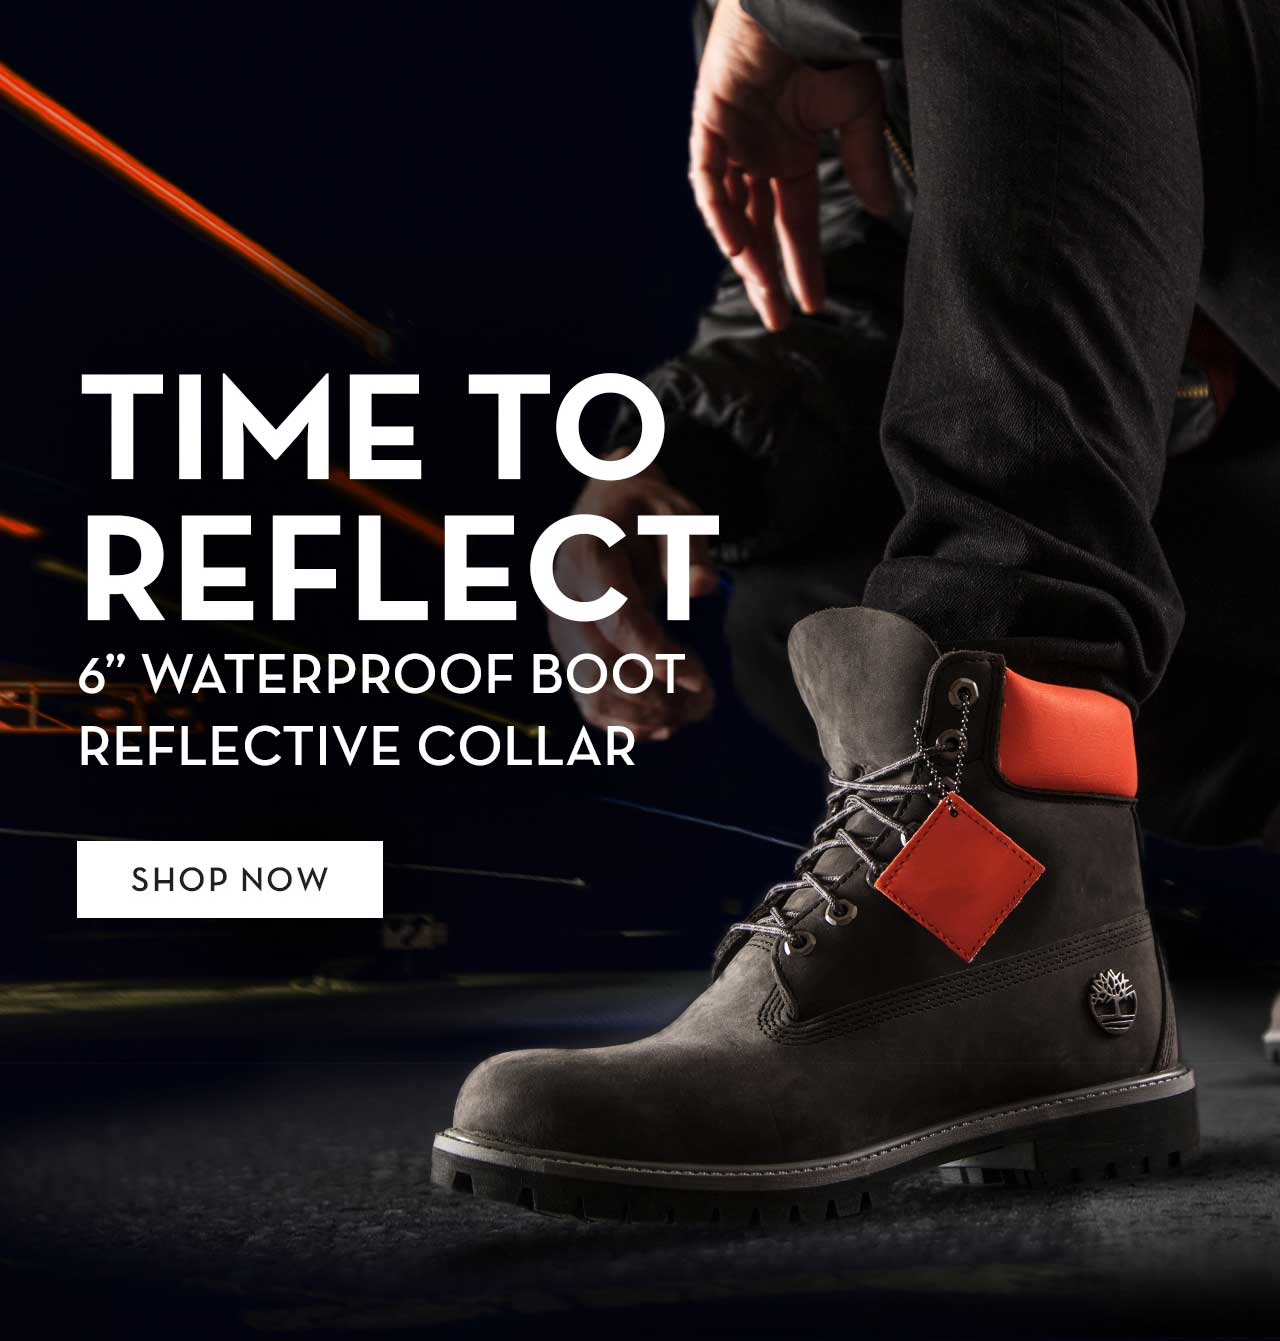 "Time To Reflect 6"" Waterproof Boot Reflective Collar Shop Now"